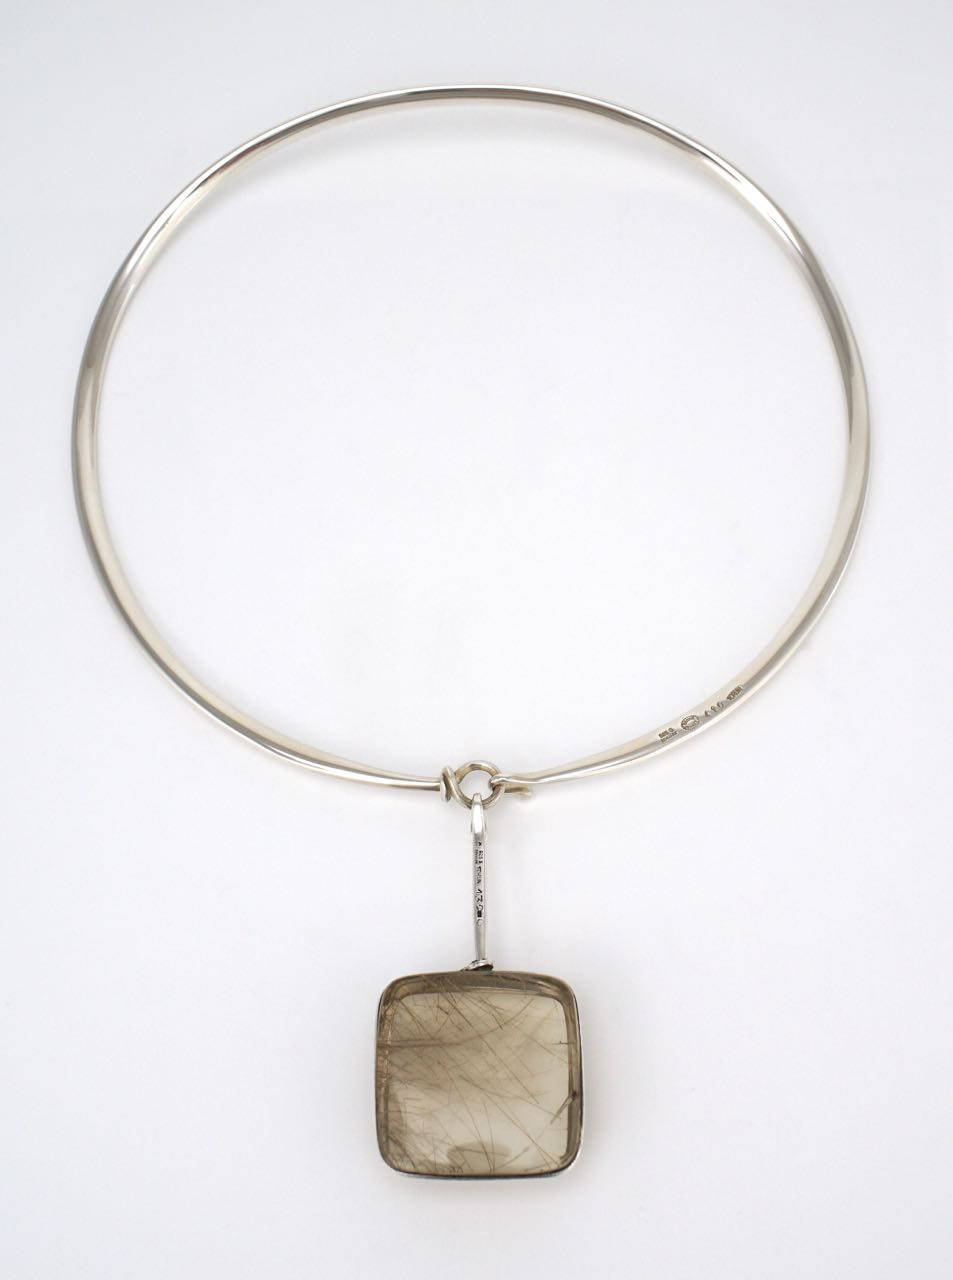 Georg Jensen silver neck ring and rutilated quartz pendant design 410 Torun